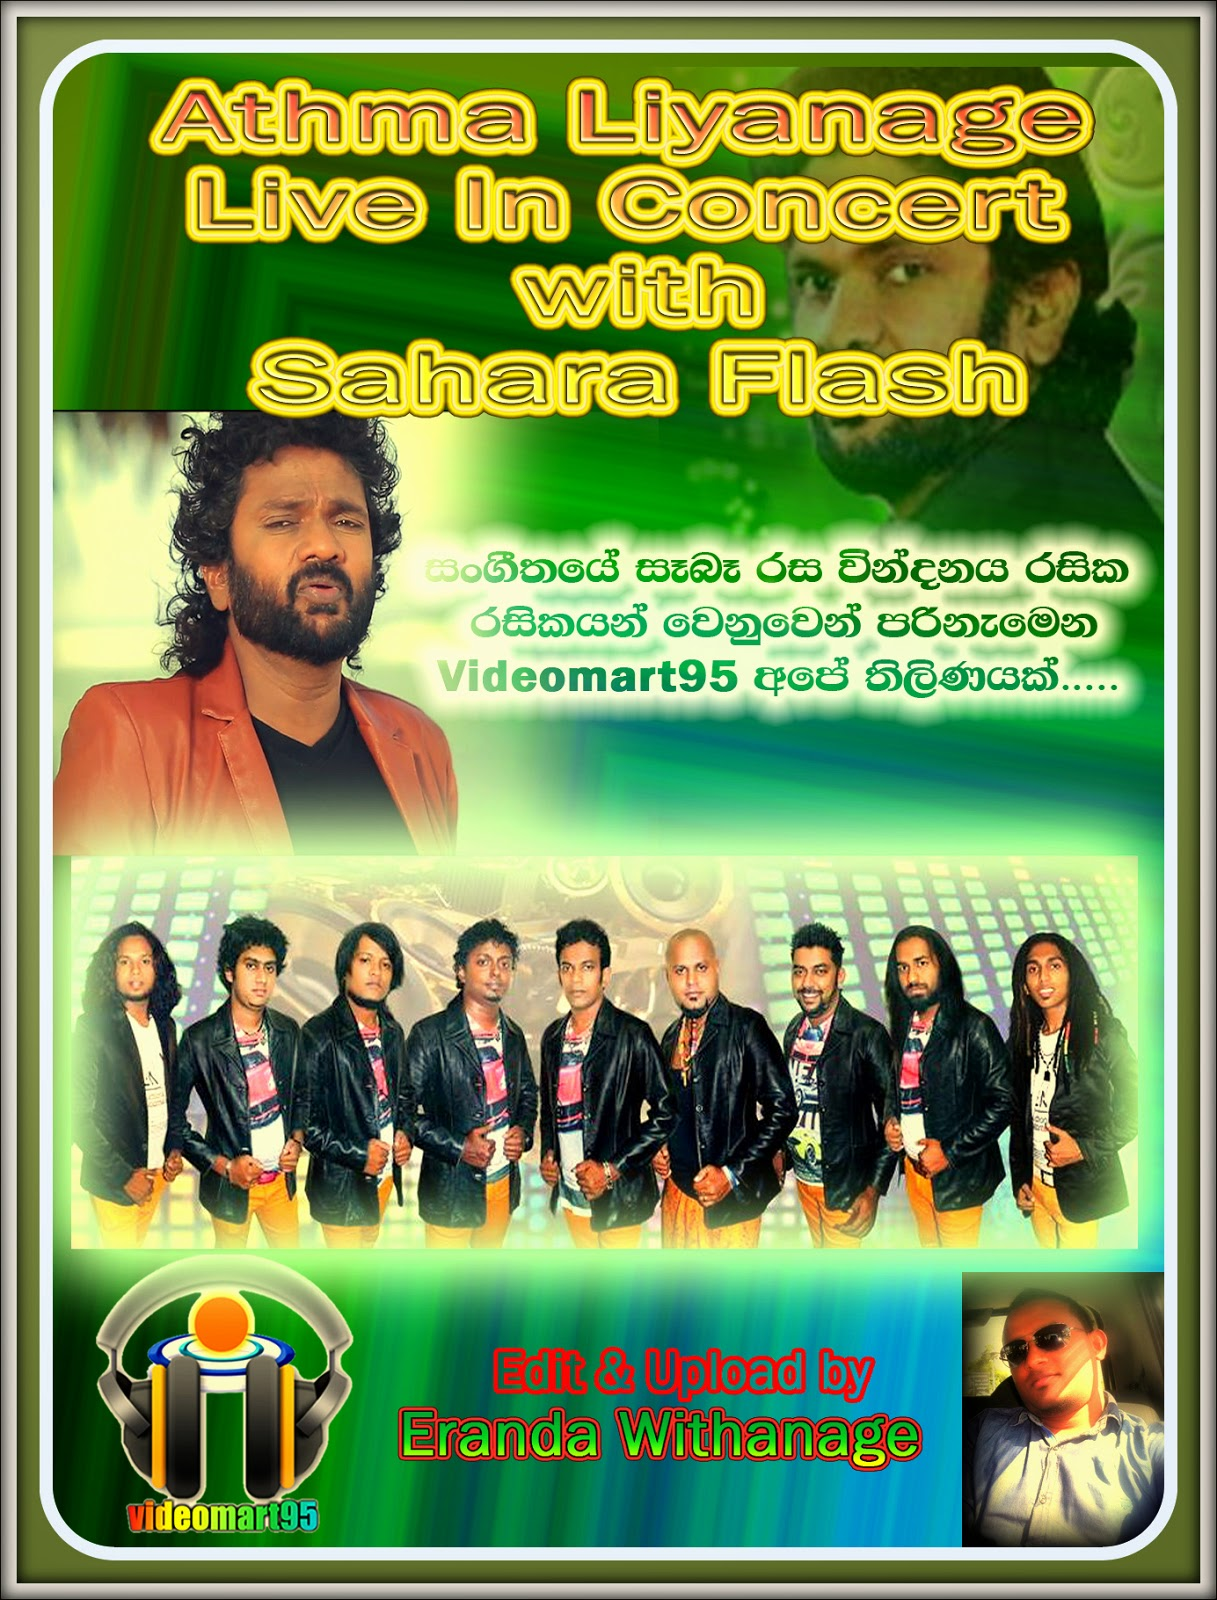 ATHMA LIYANAGE LIVE IN CONCERT WITH SAHARA FLASH 2015 (Indoor)